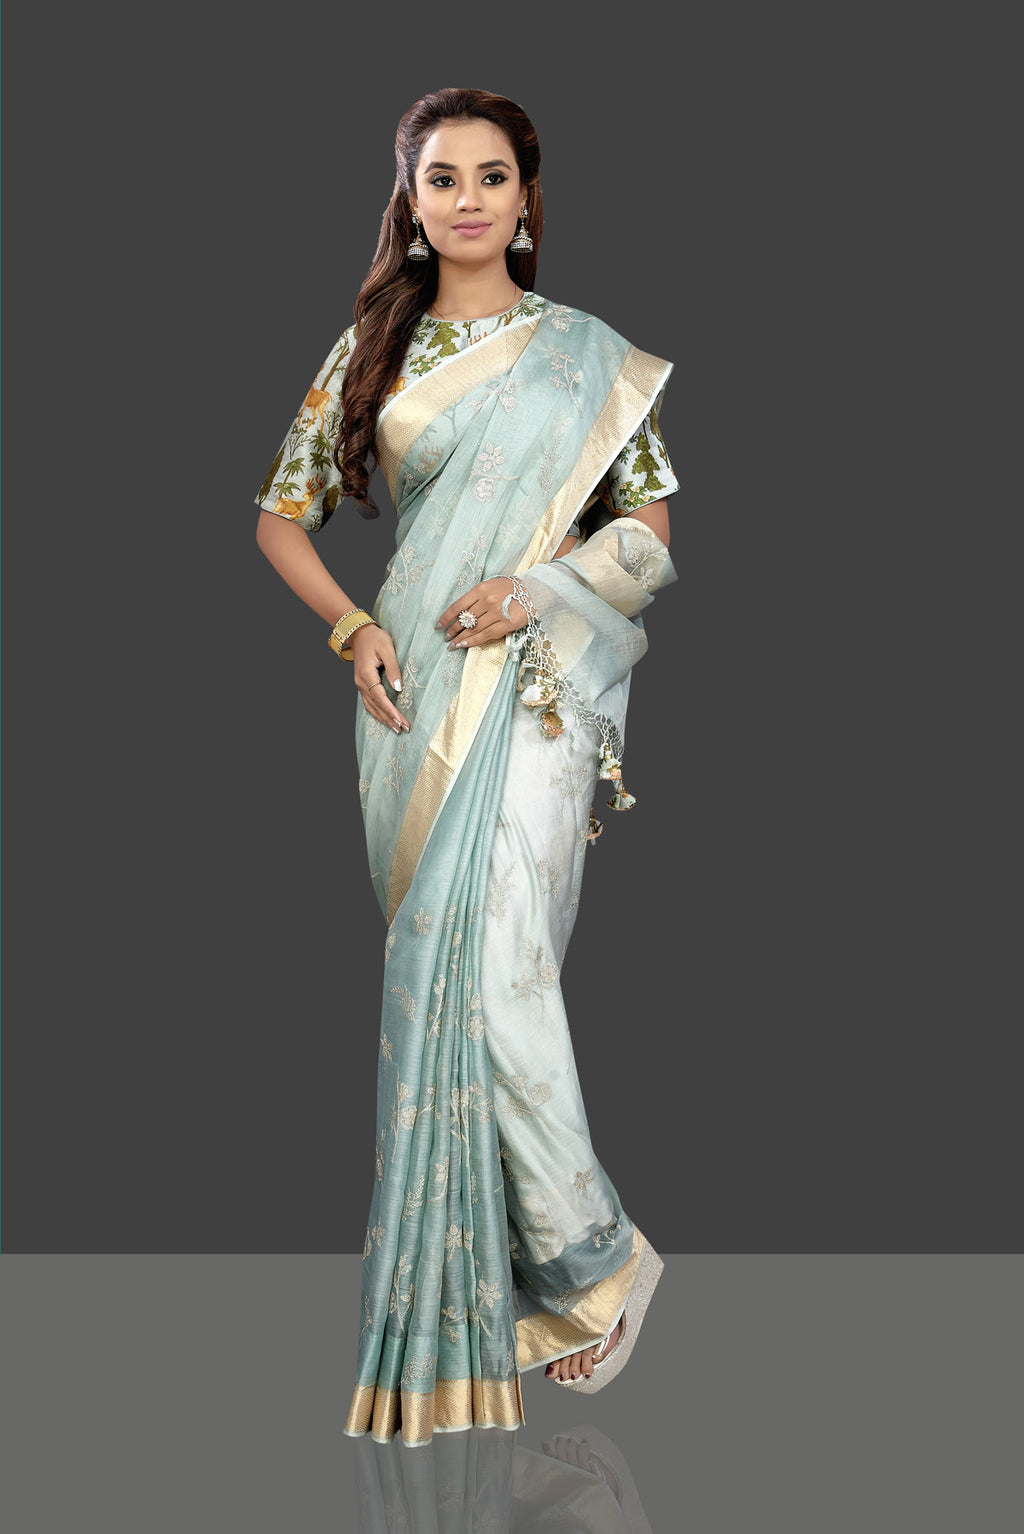 Buy stunning powder blue embroidered chanderi saree online in USA with printed saree blouse. Shop stunning chanderi sarees, handwoven sarees, embroidered sarees, printed sarees, pure silk sarees in latest designs from Pure Elegance Indian fashion boutique in USA.-full view